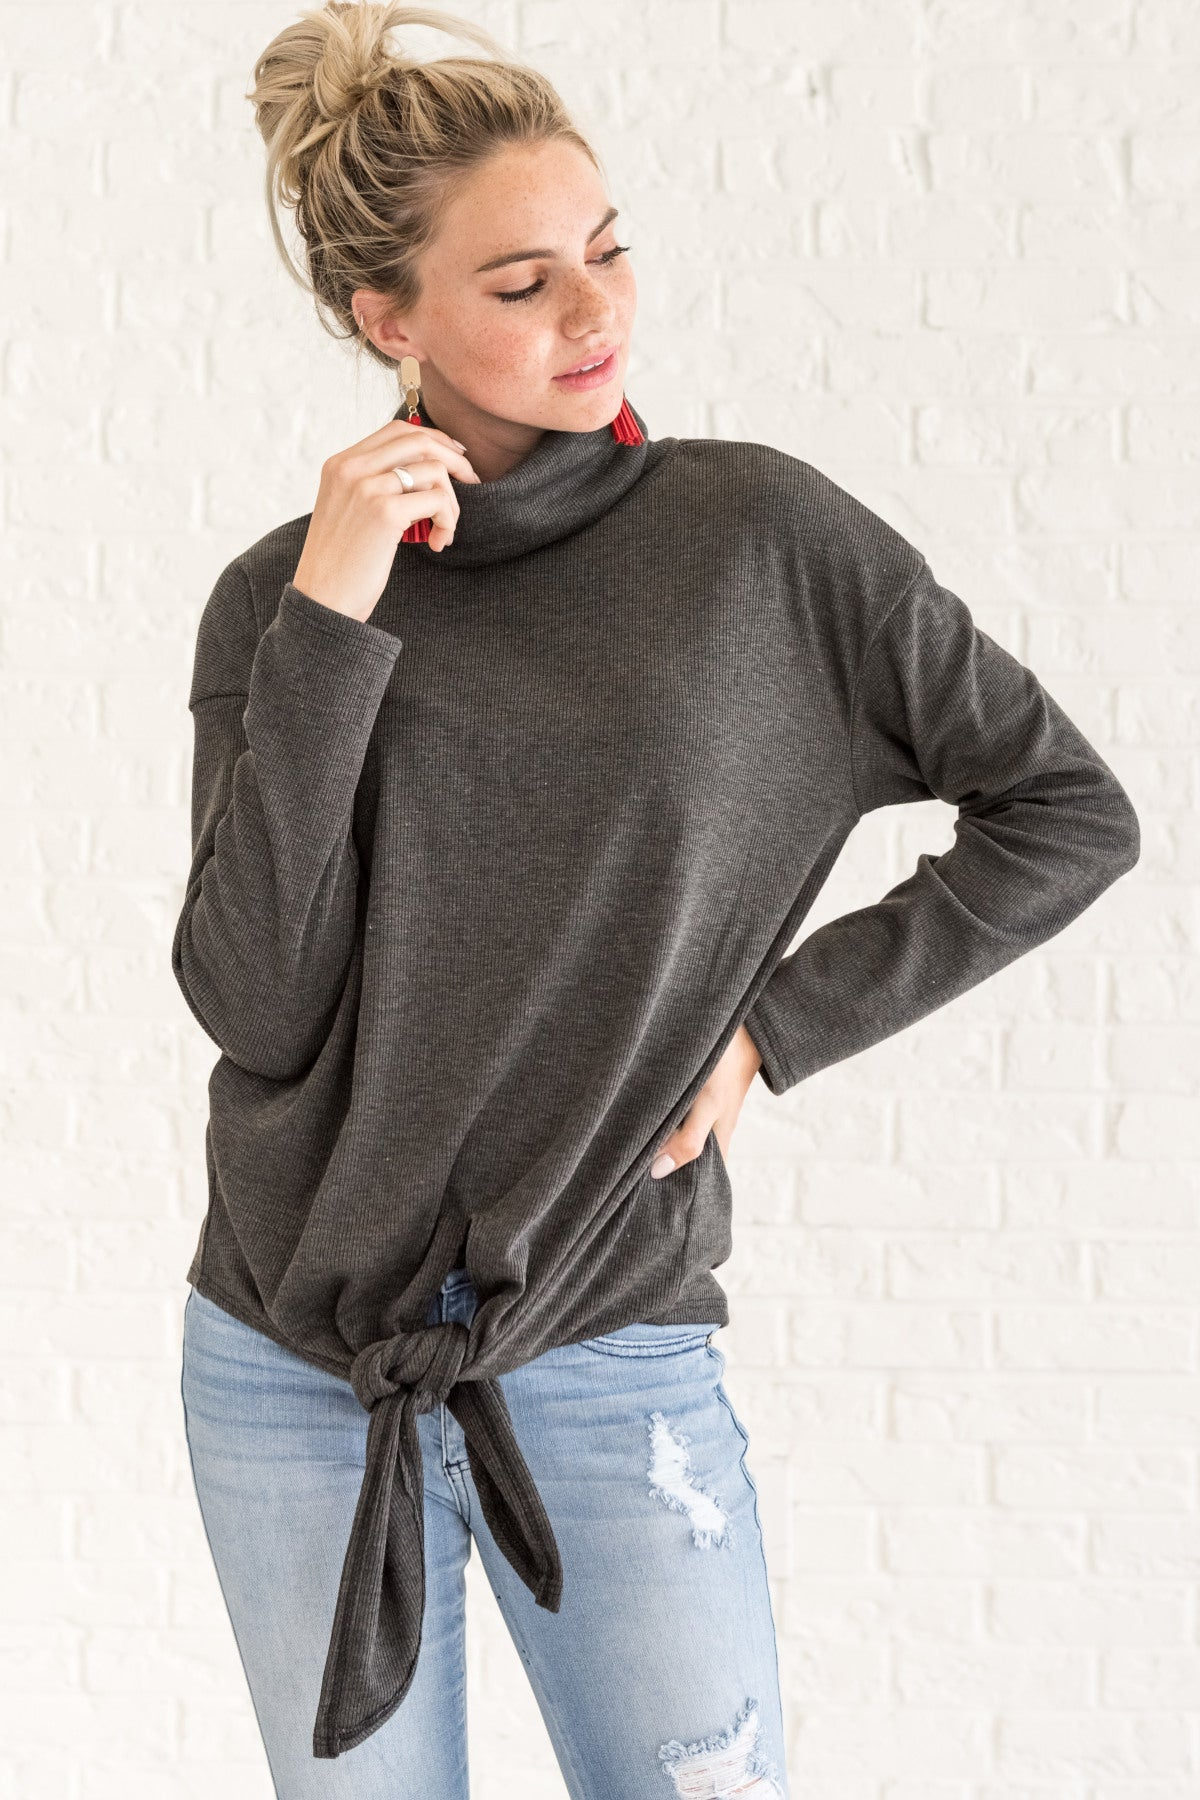 charcoal gray cute tie front turtleneck pullover tops for fall and winter